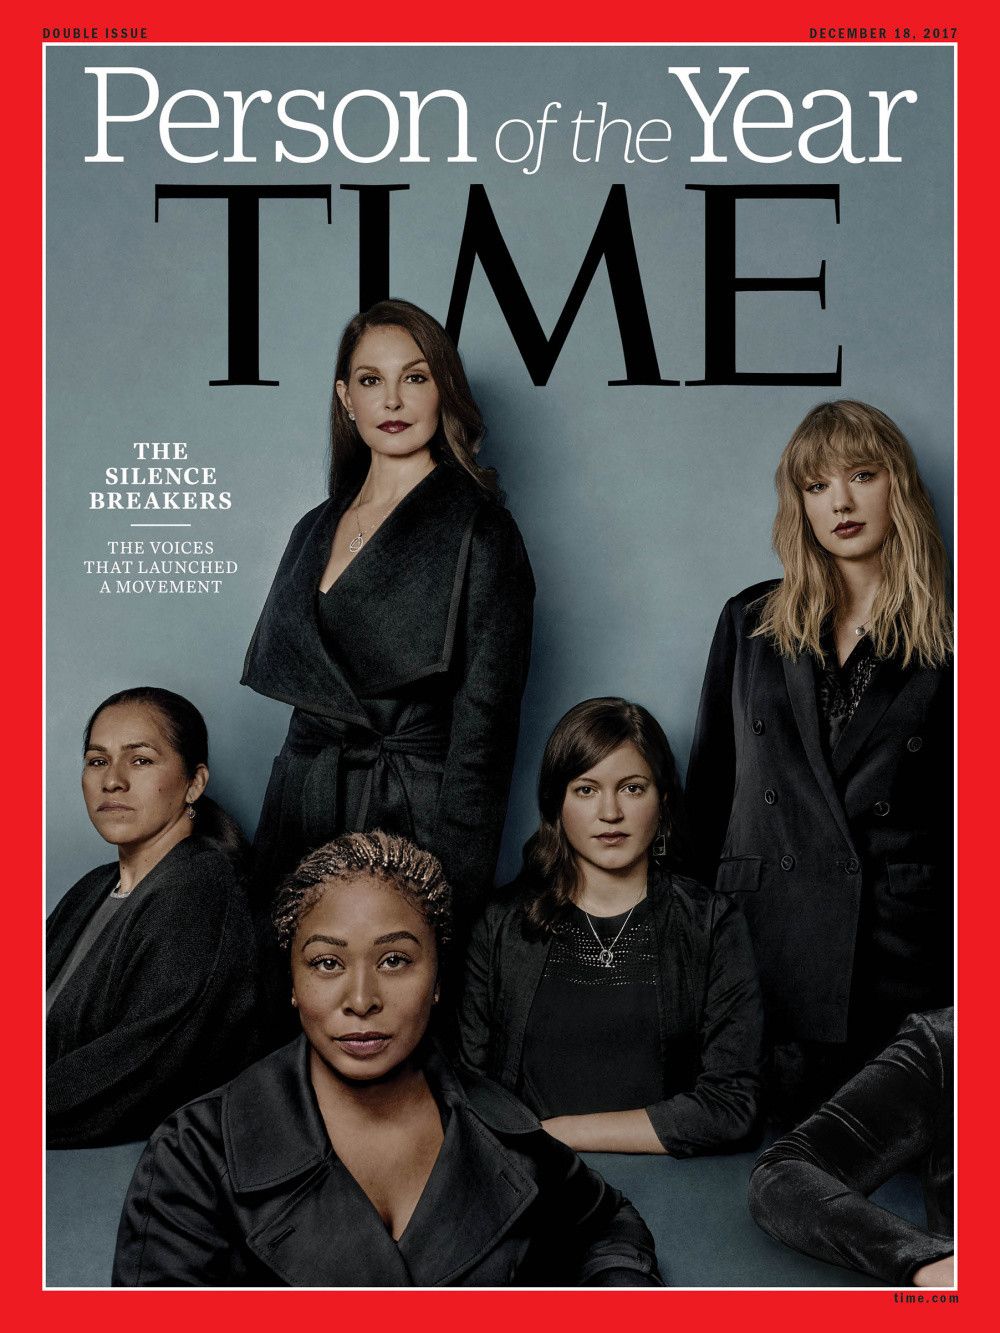 'TIME' Names the #MeToo 'Silence Breakers' as Person of the Year 2017